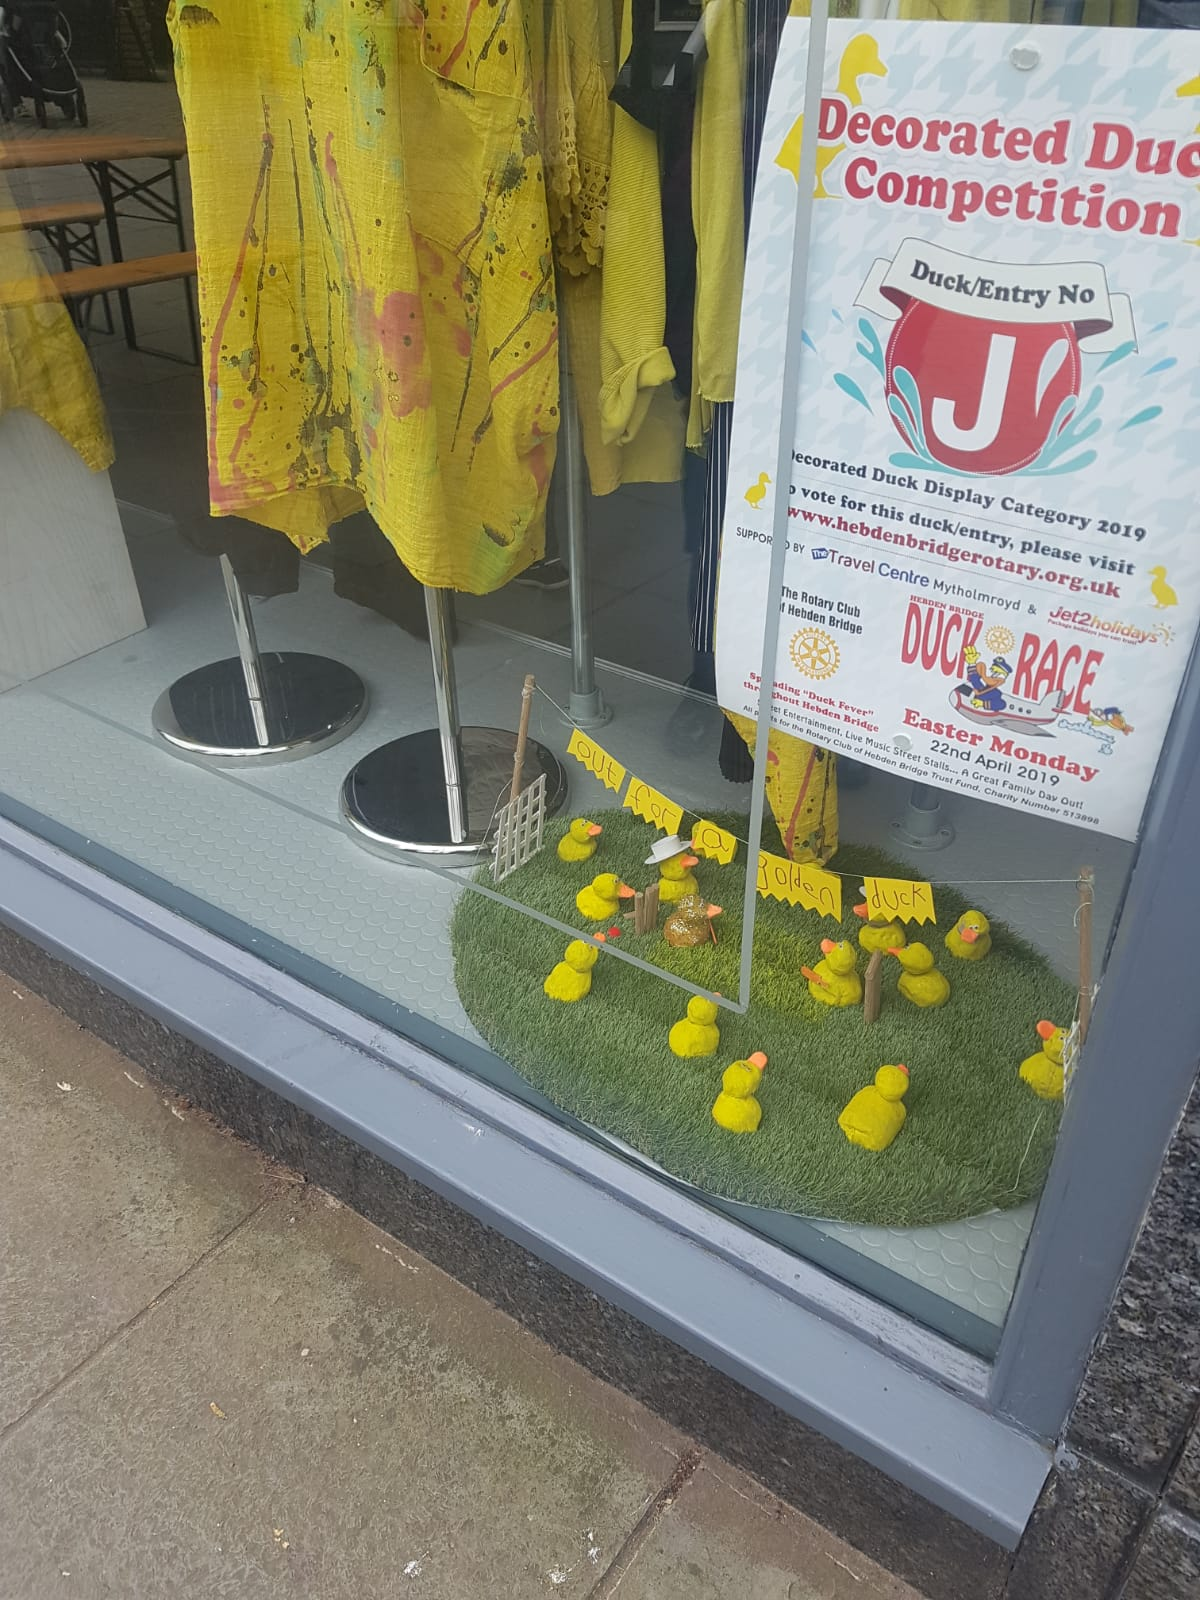 duck-window-display.jpg